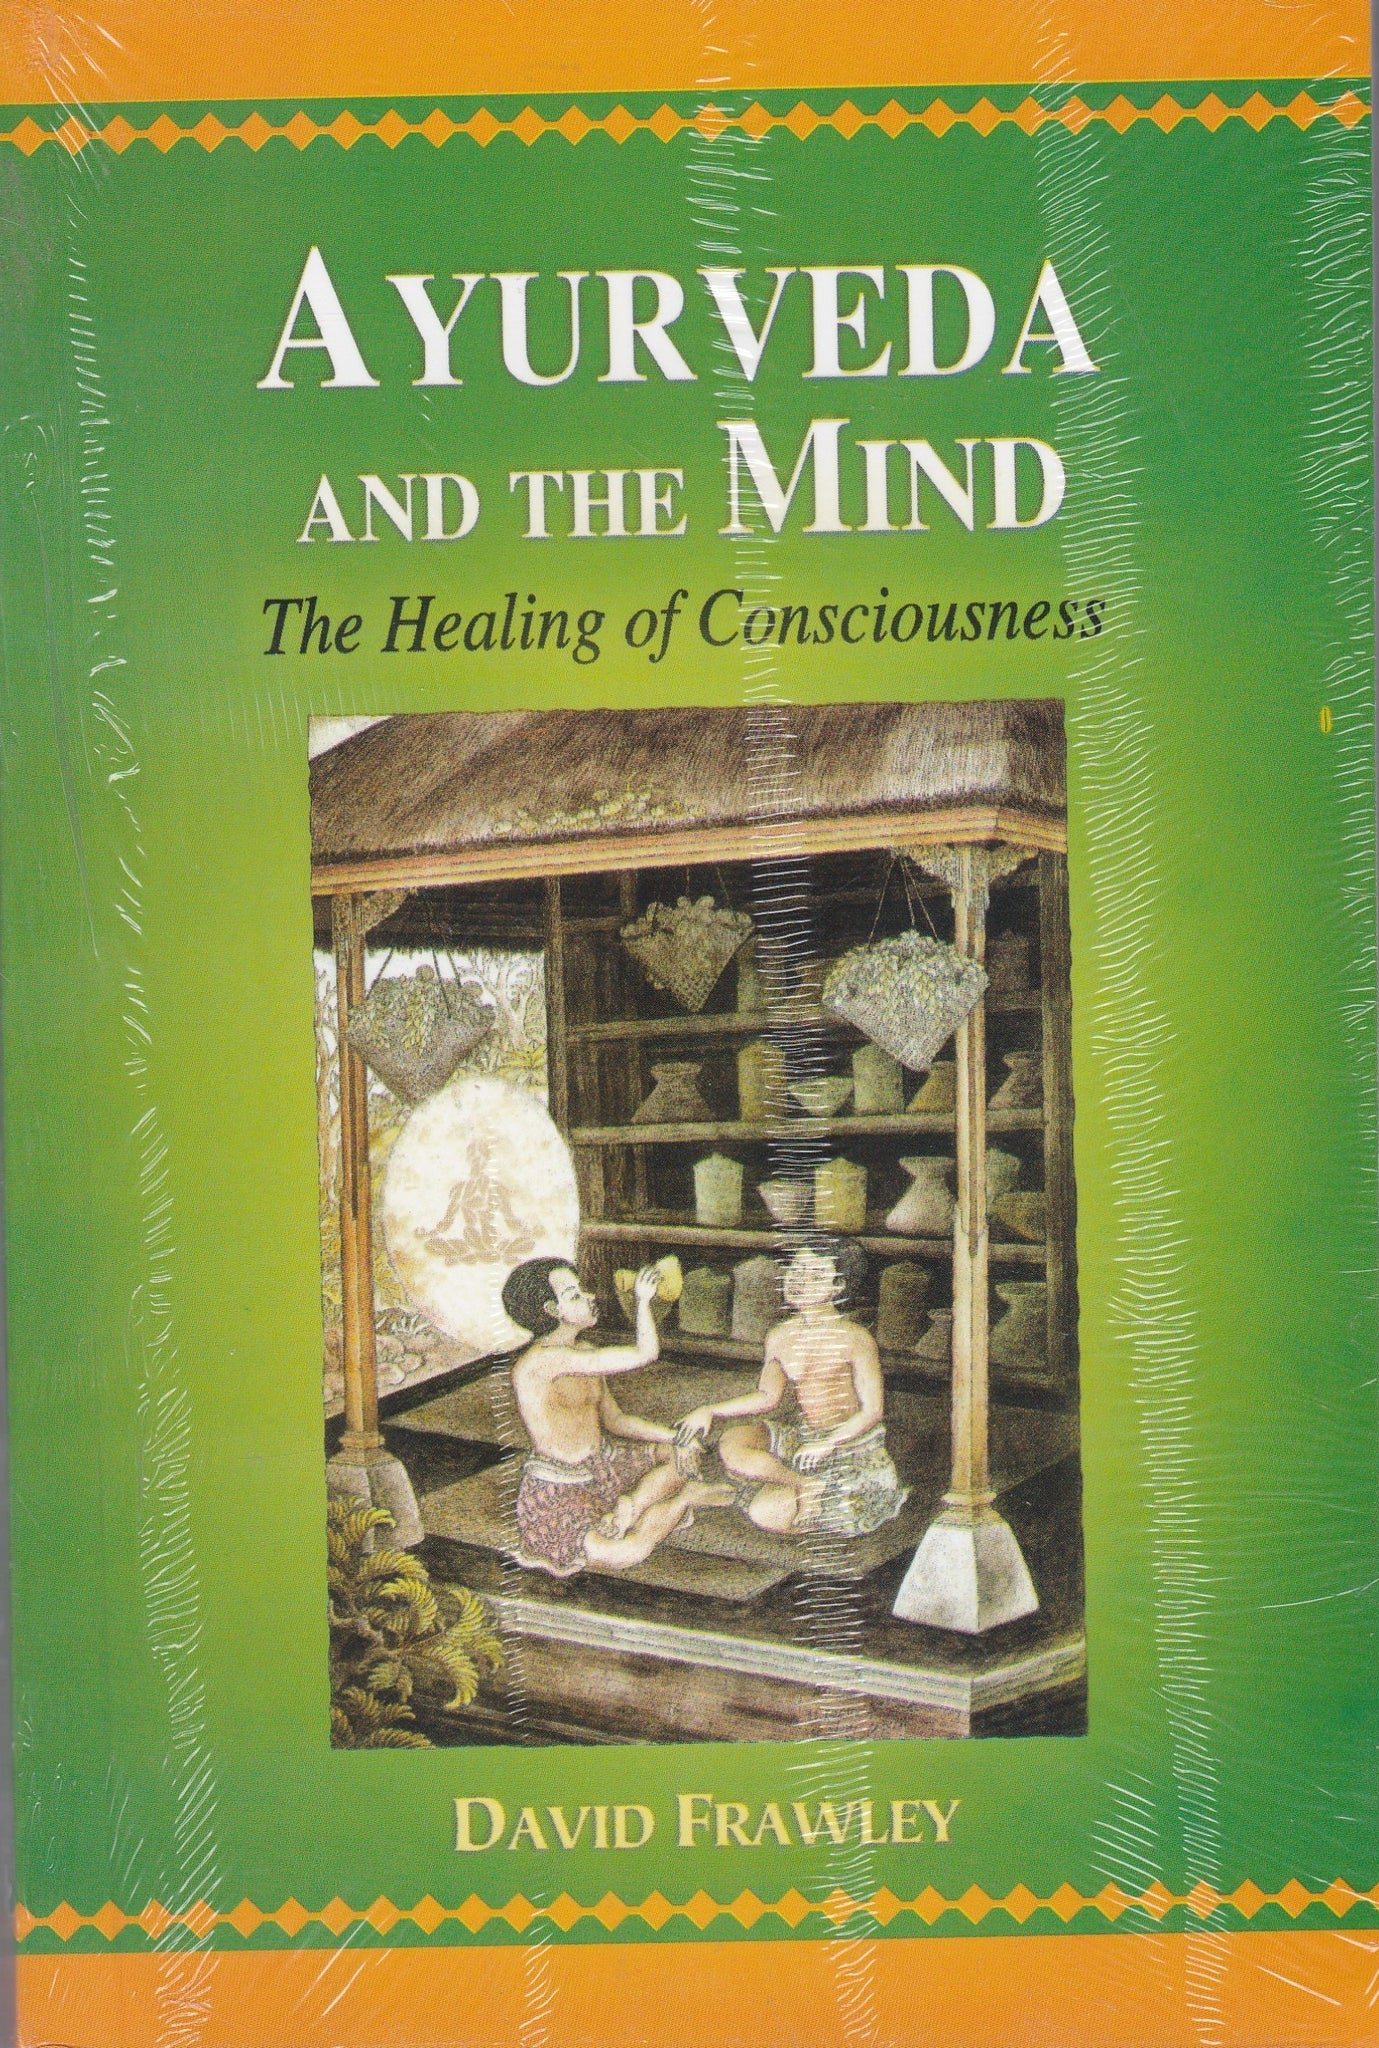 Ayurveda and The Mind - The Healing of Consciousness